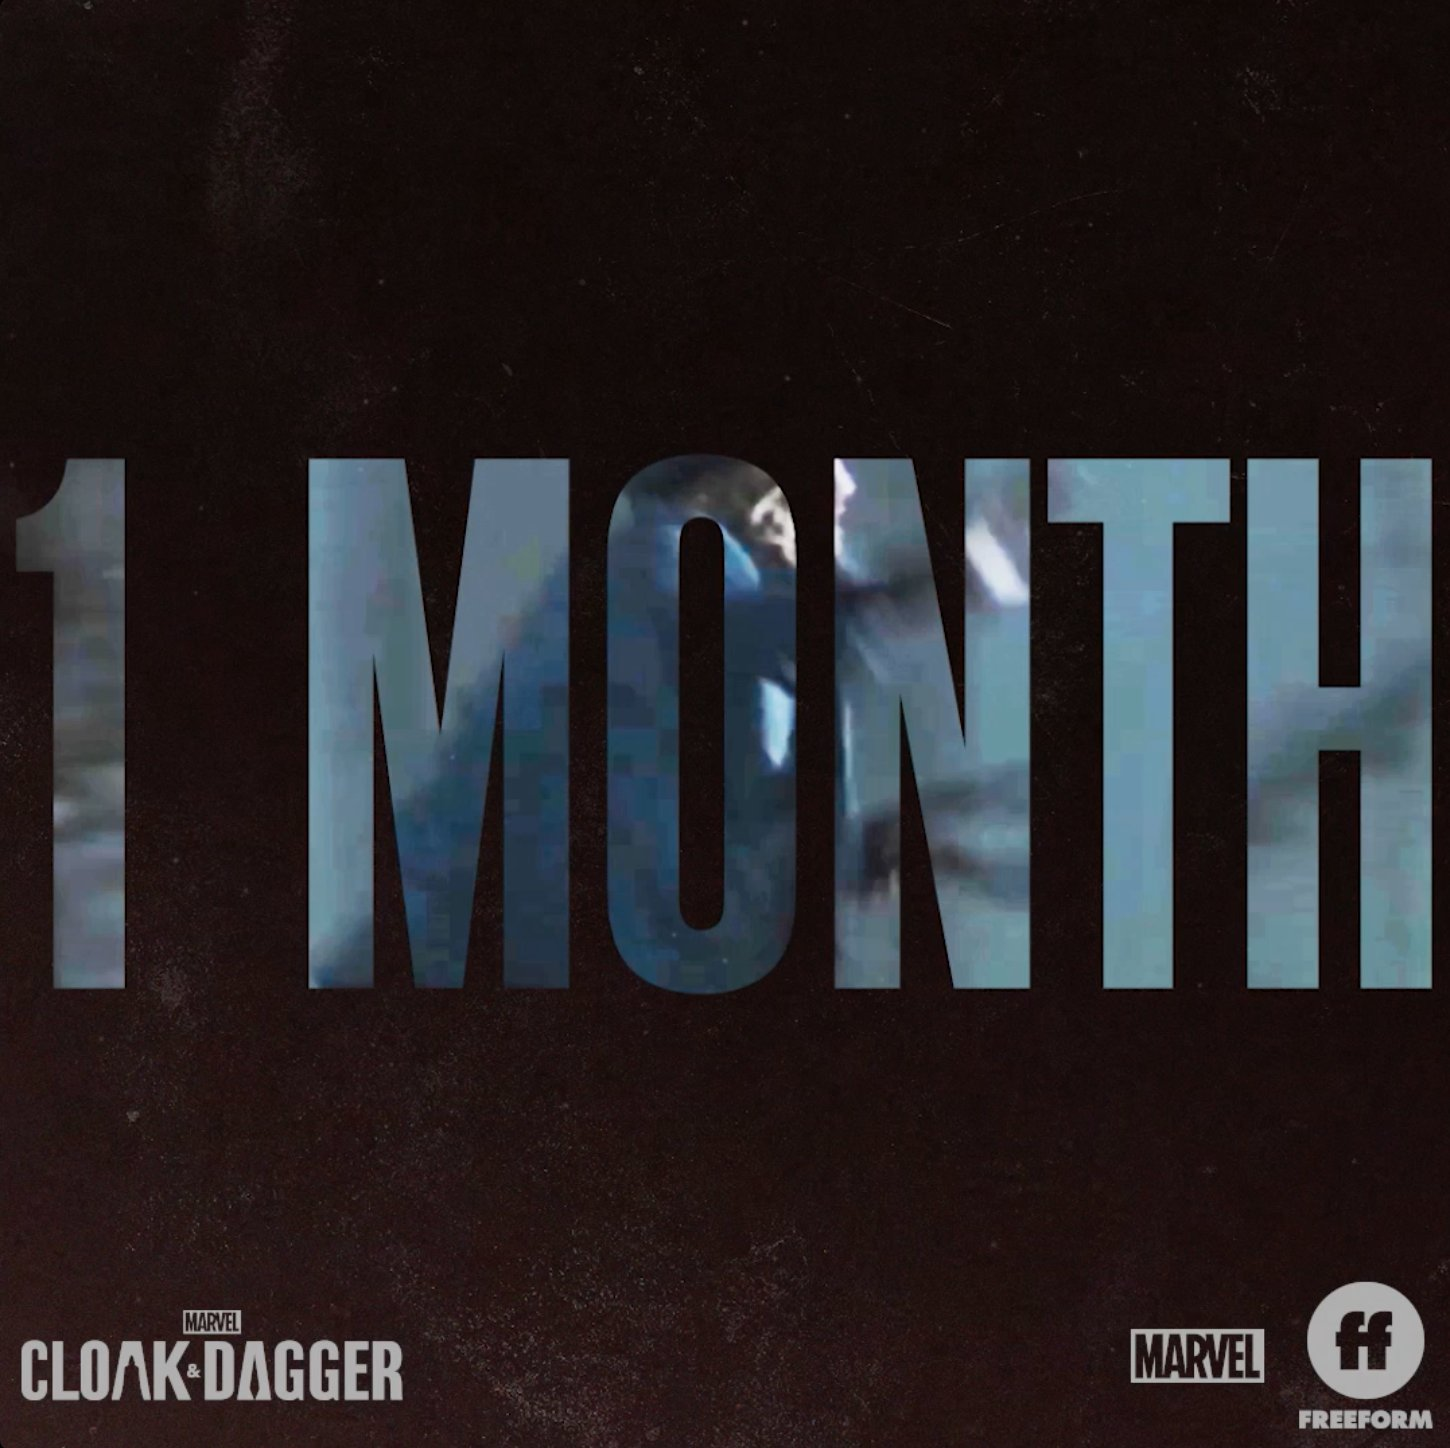 1 month until it all goes down. #CloakAndDagger https://t.co/Kya4tBtHWt